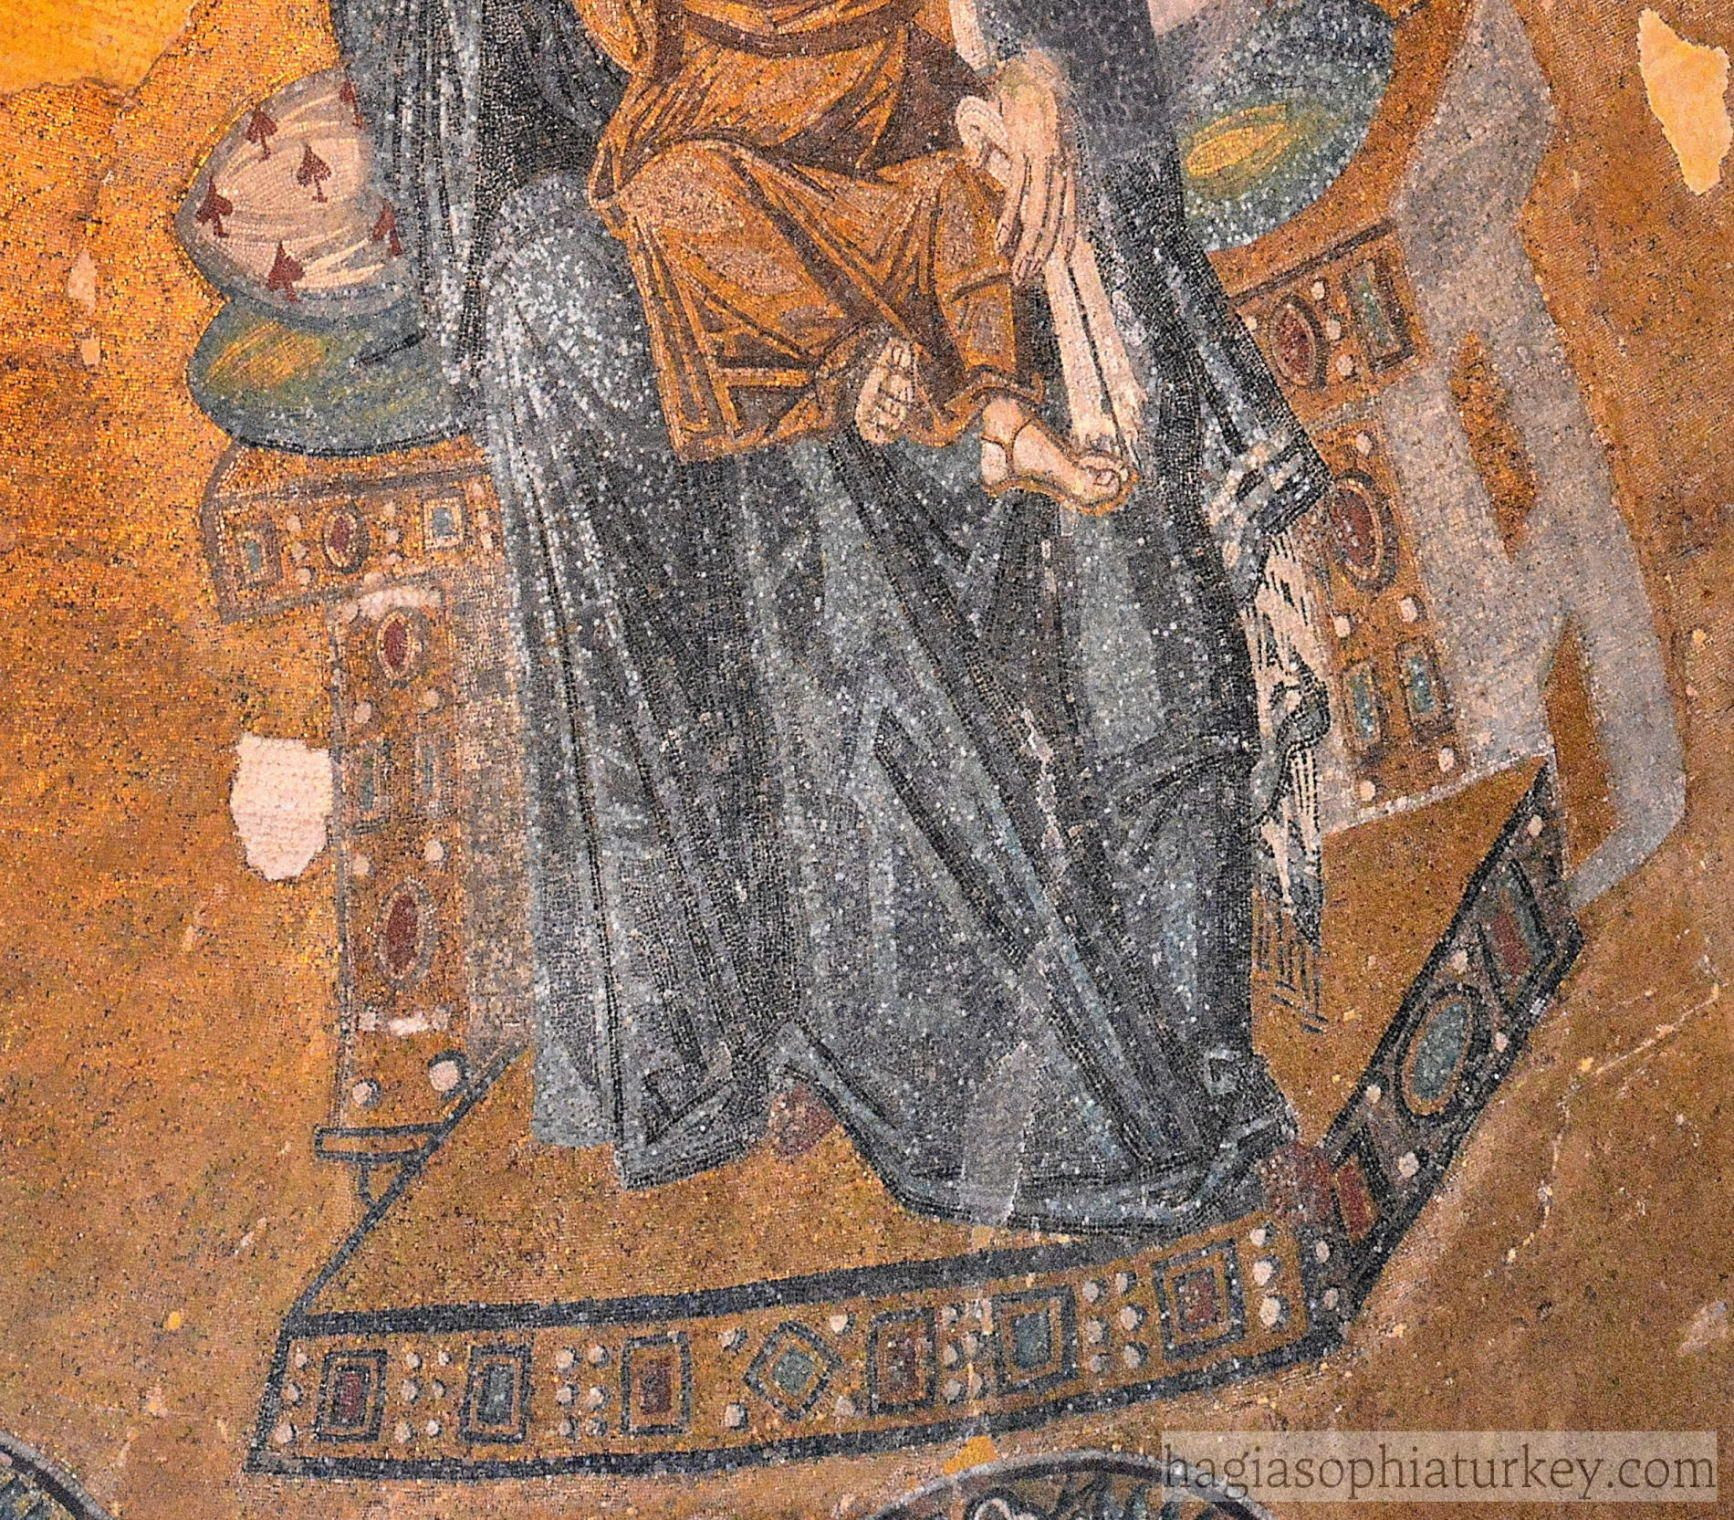 The Virgin And Child Mosaic Is Located In The Apse Semi Dome In The Mosaic Mary Is Enthroned And She Puts Her Right Hand On Shoul Mosaic Hagia Sophia Children